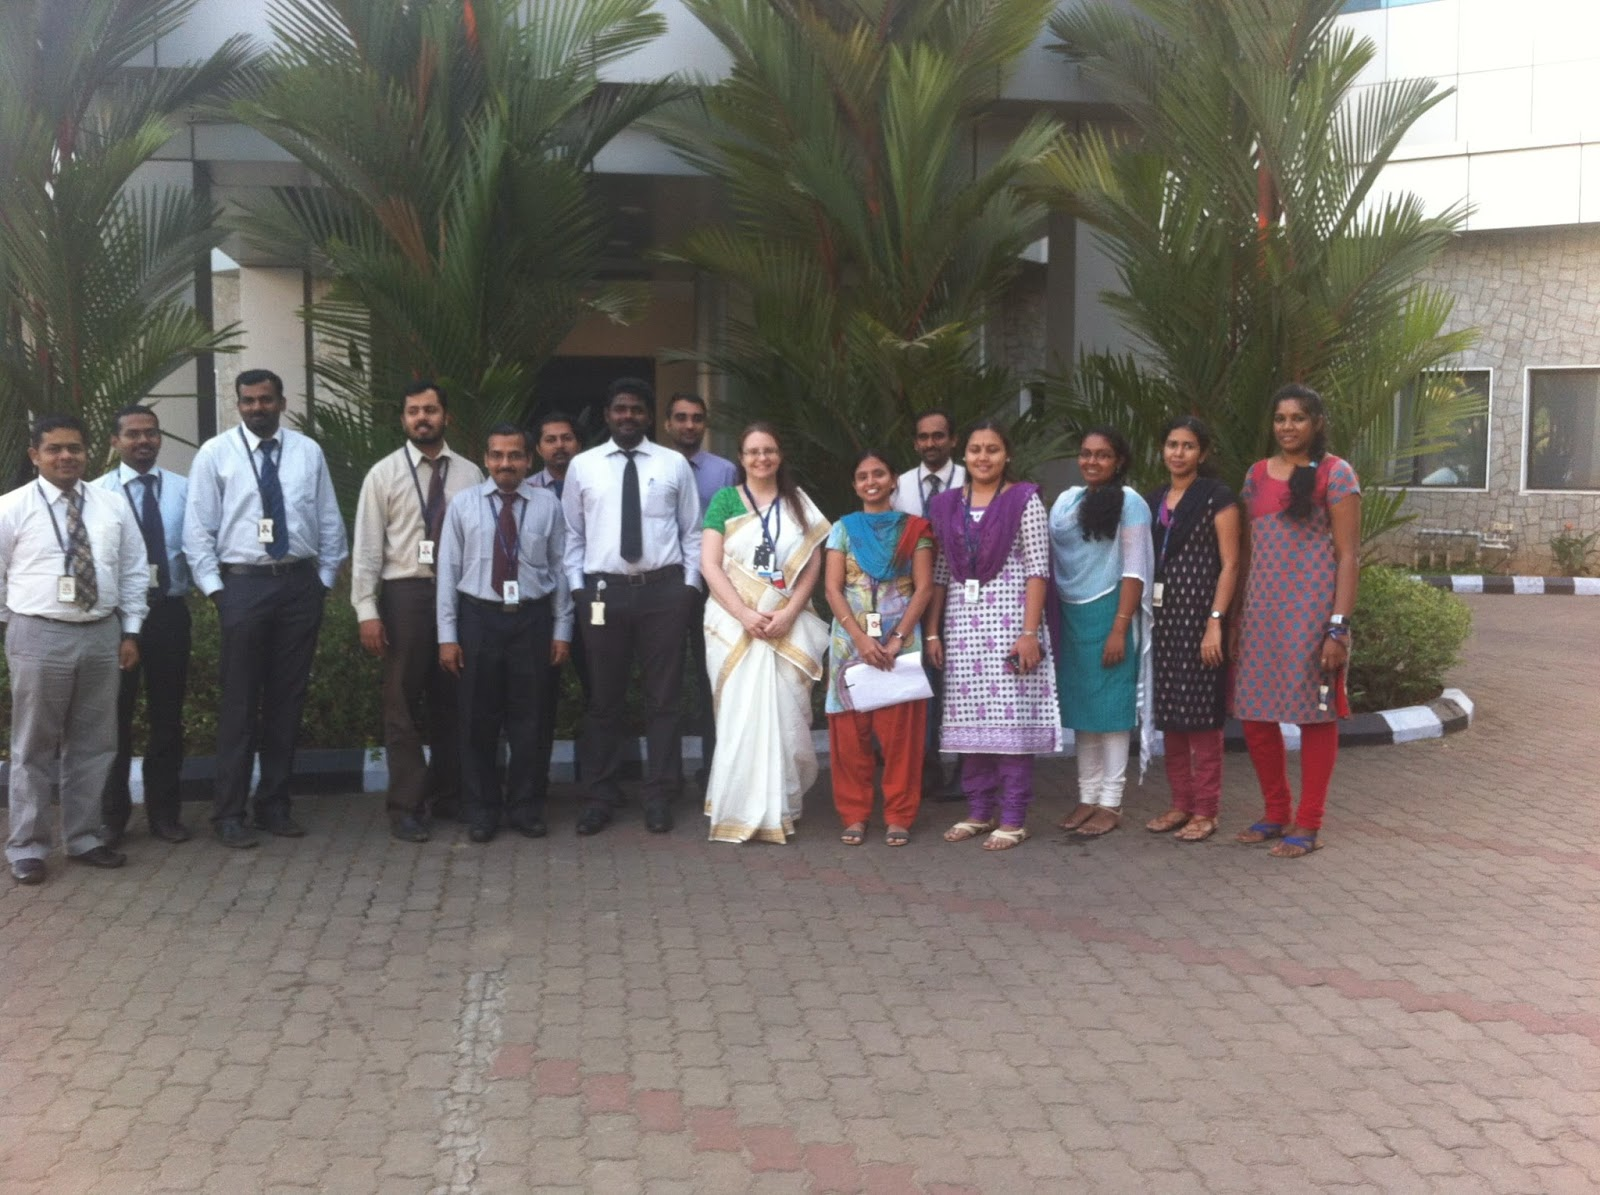 US Culture Basics for Rapport Building Kochi, 100 participants (Kochi, Trivandrum)